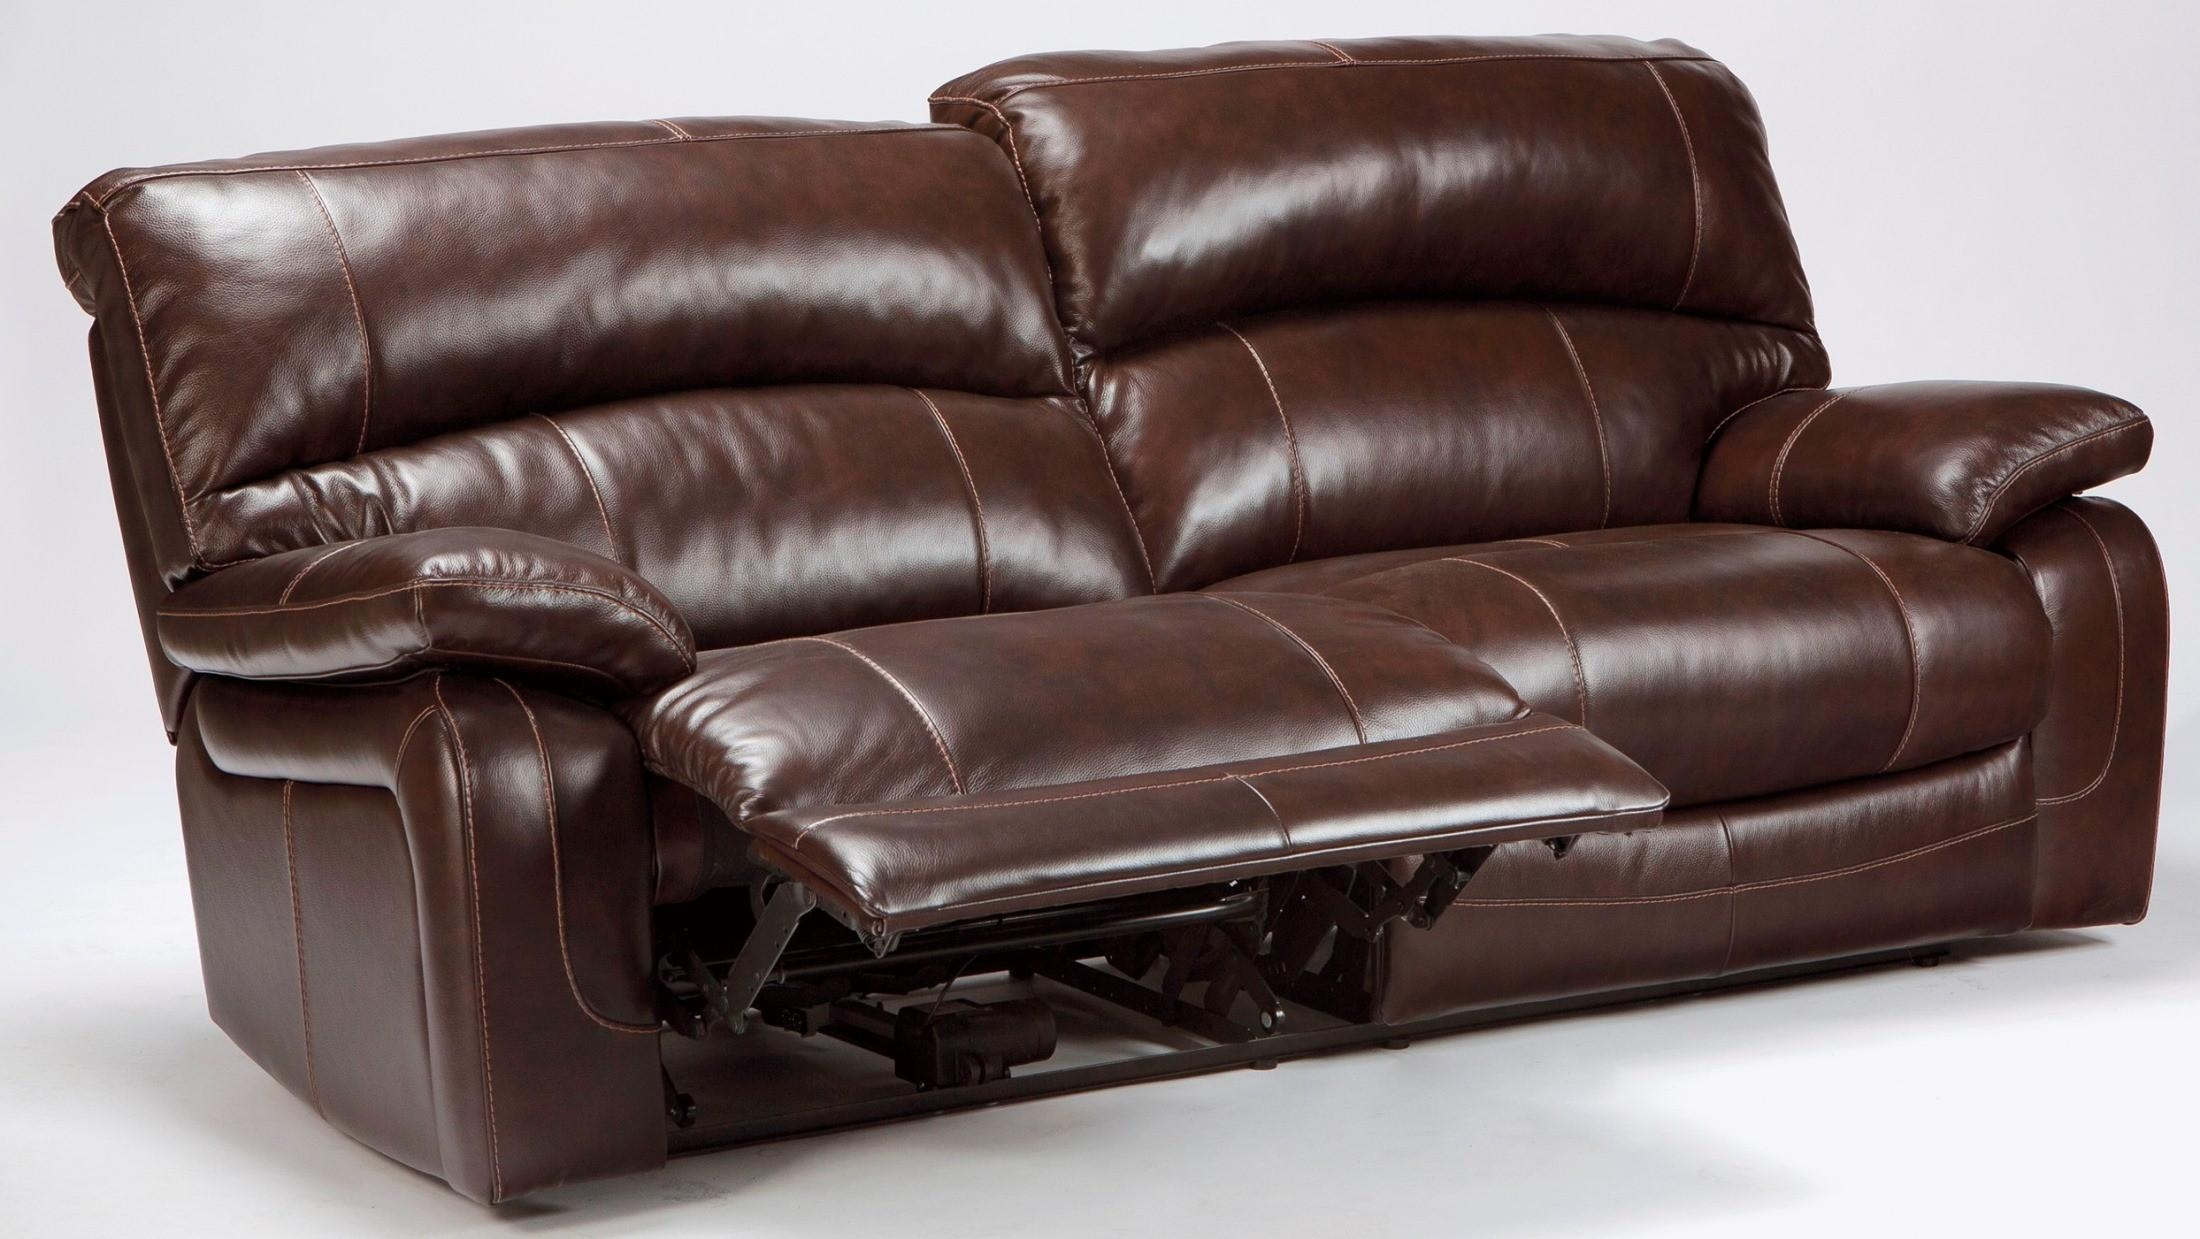 Damacio Dark Brown 2 Seat Power Reclining Sofa From Ashley For 2 Seat Recliner Sofas (Image 5 of 20)